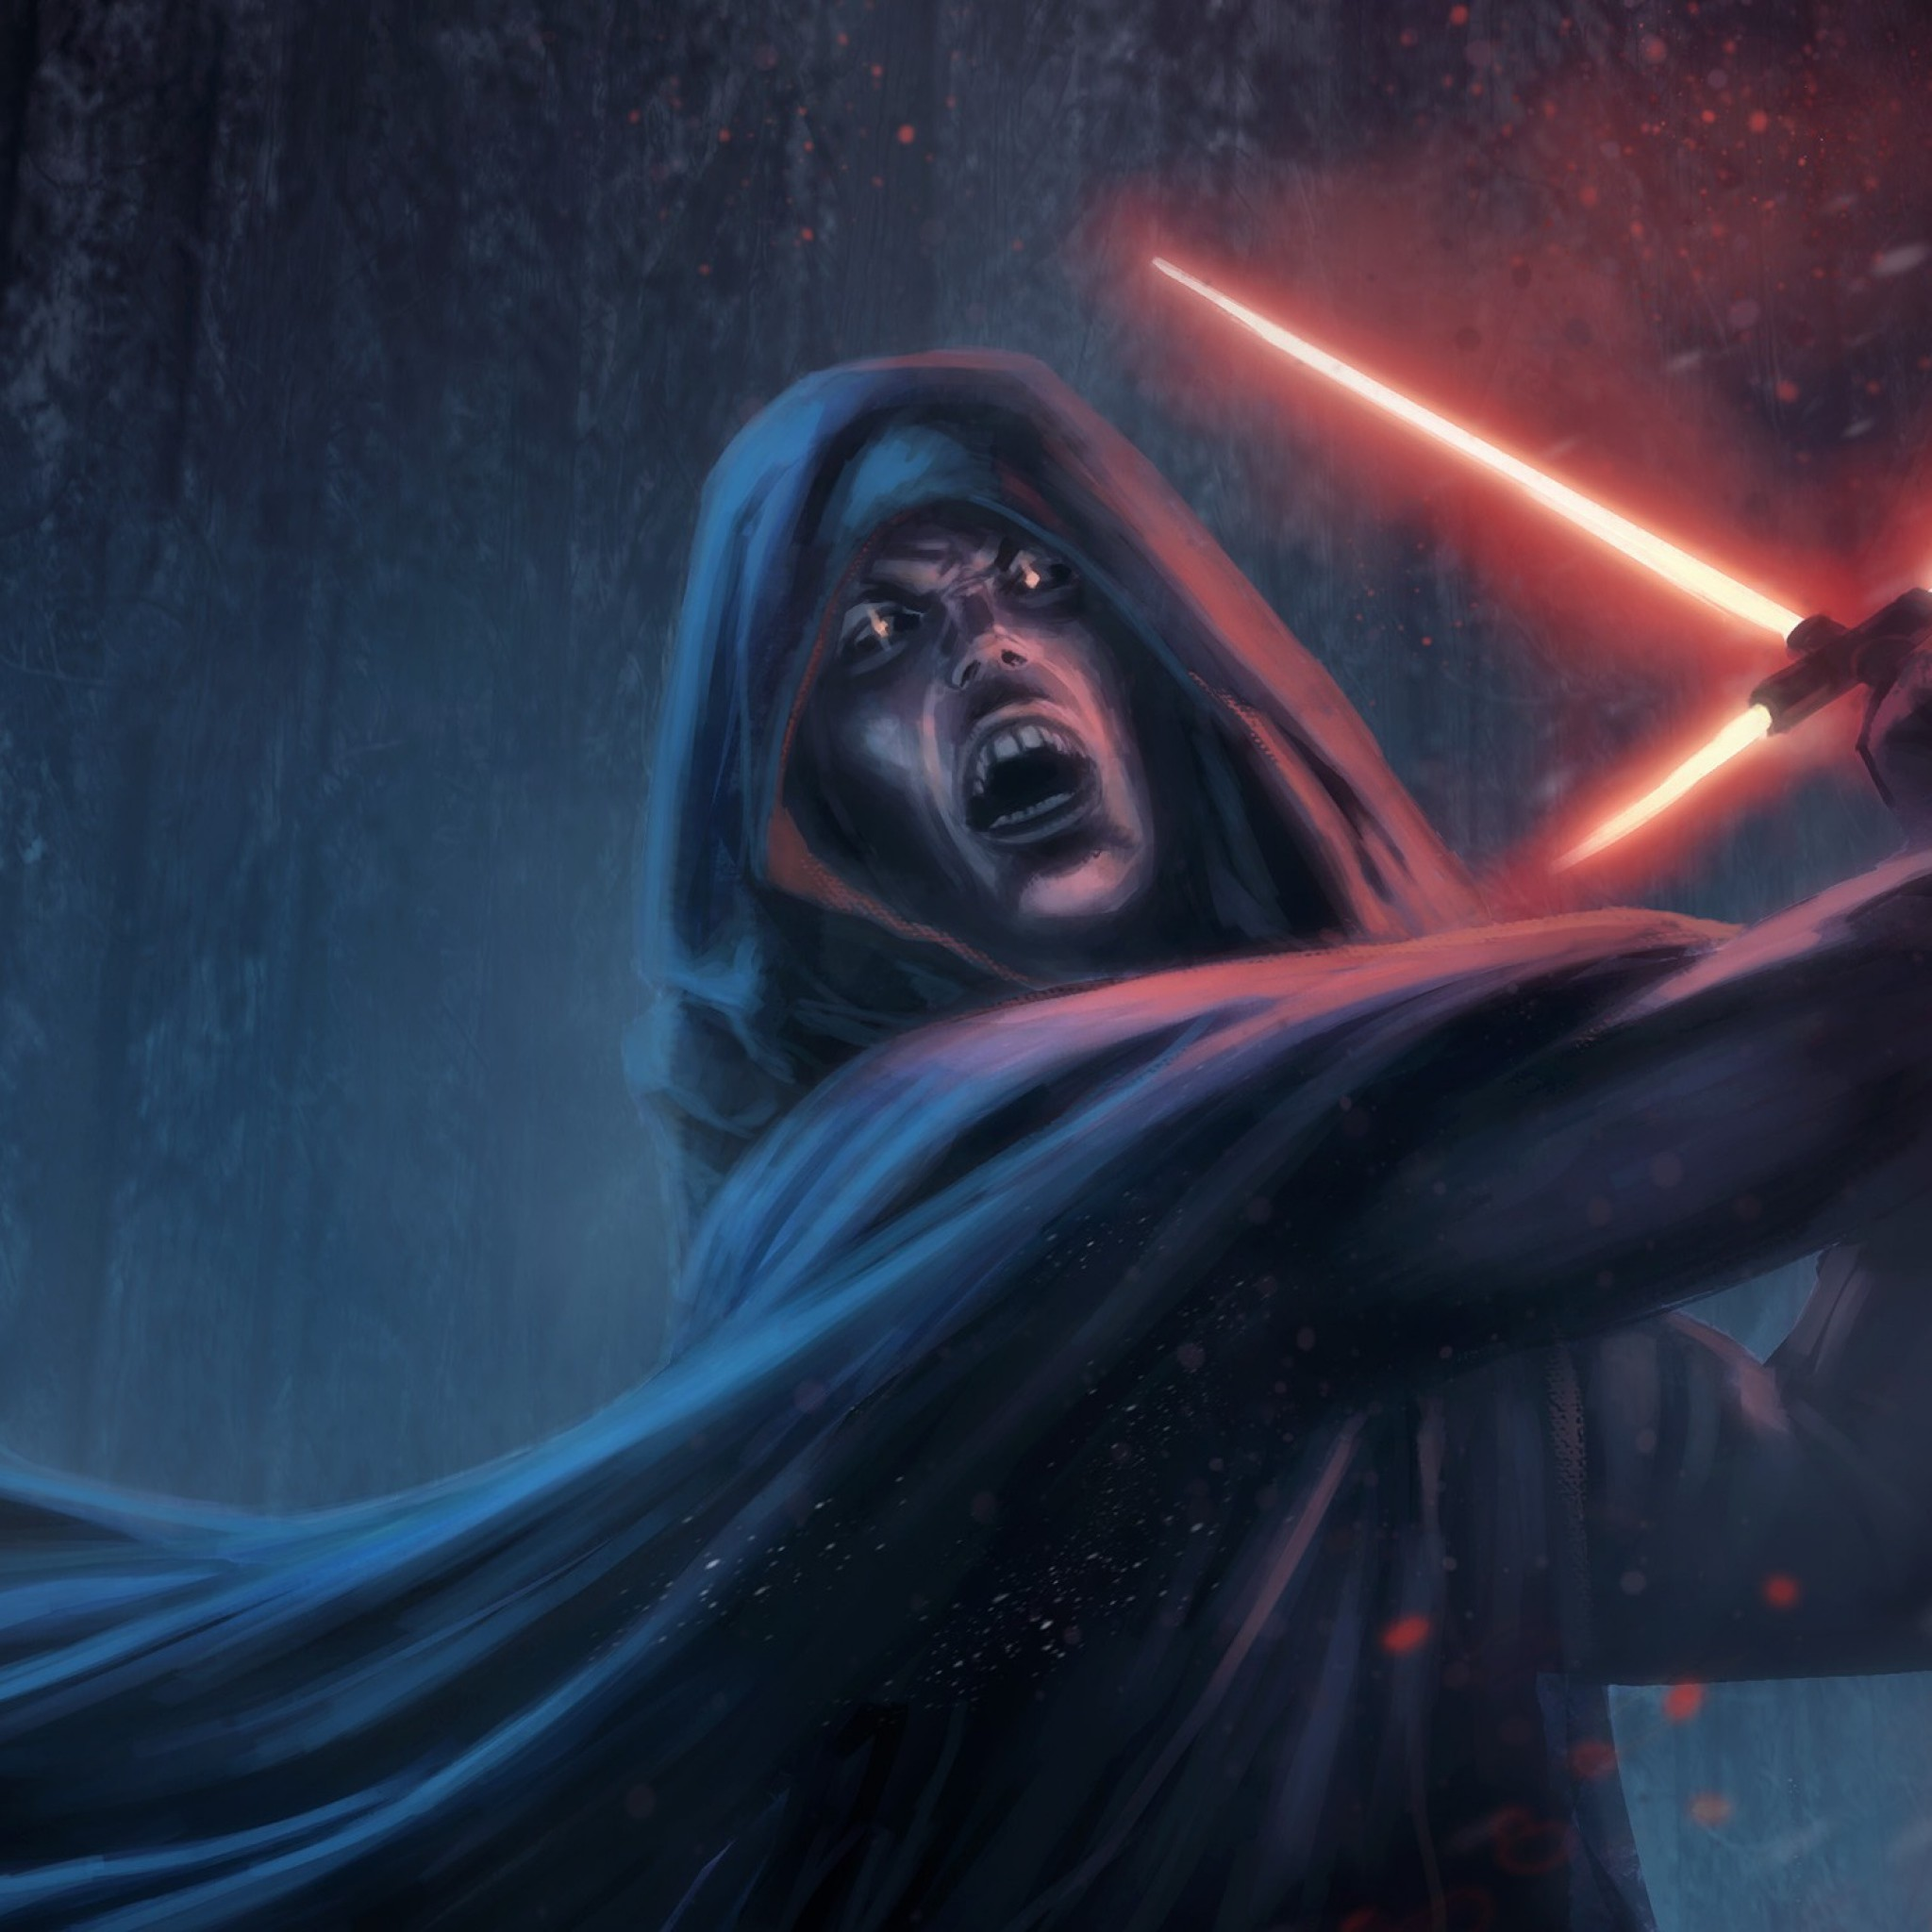 Preview wallpaper star wars episode vii – the force awakens, sith,  lightsaber 2048×2048